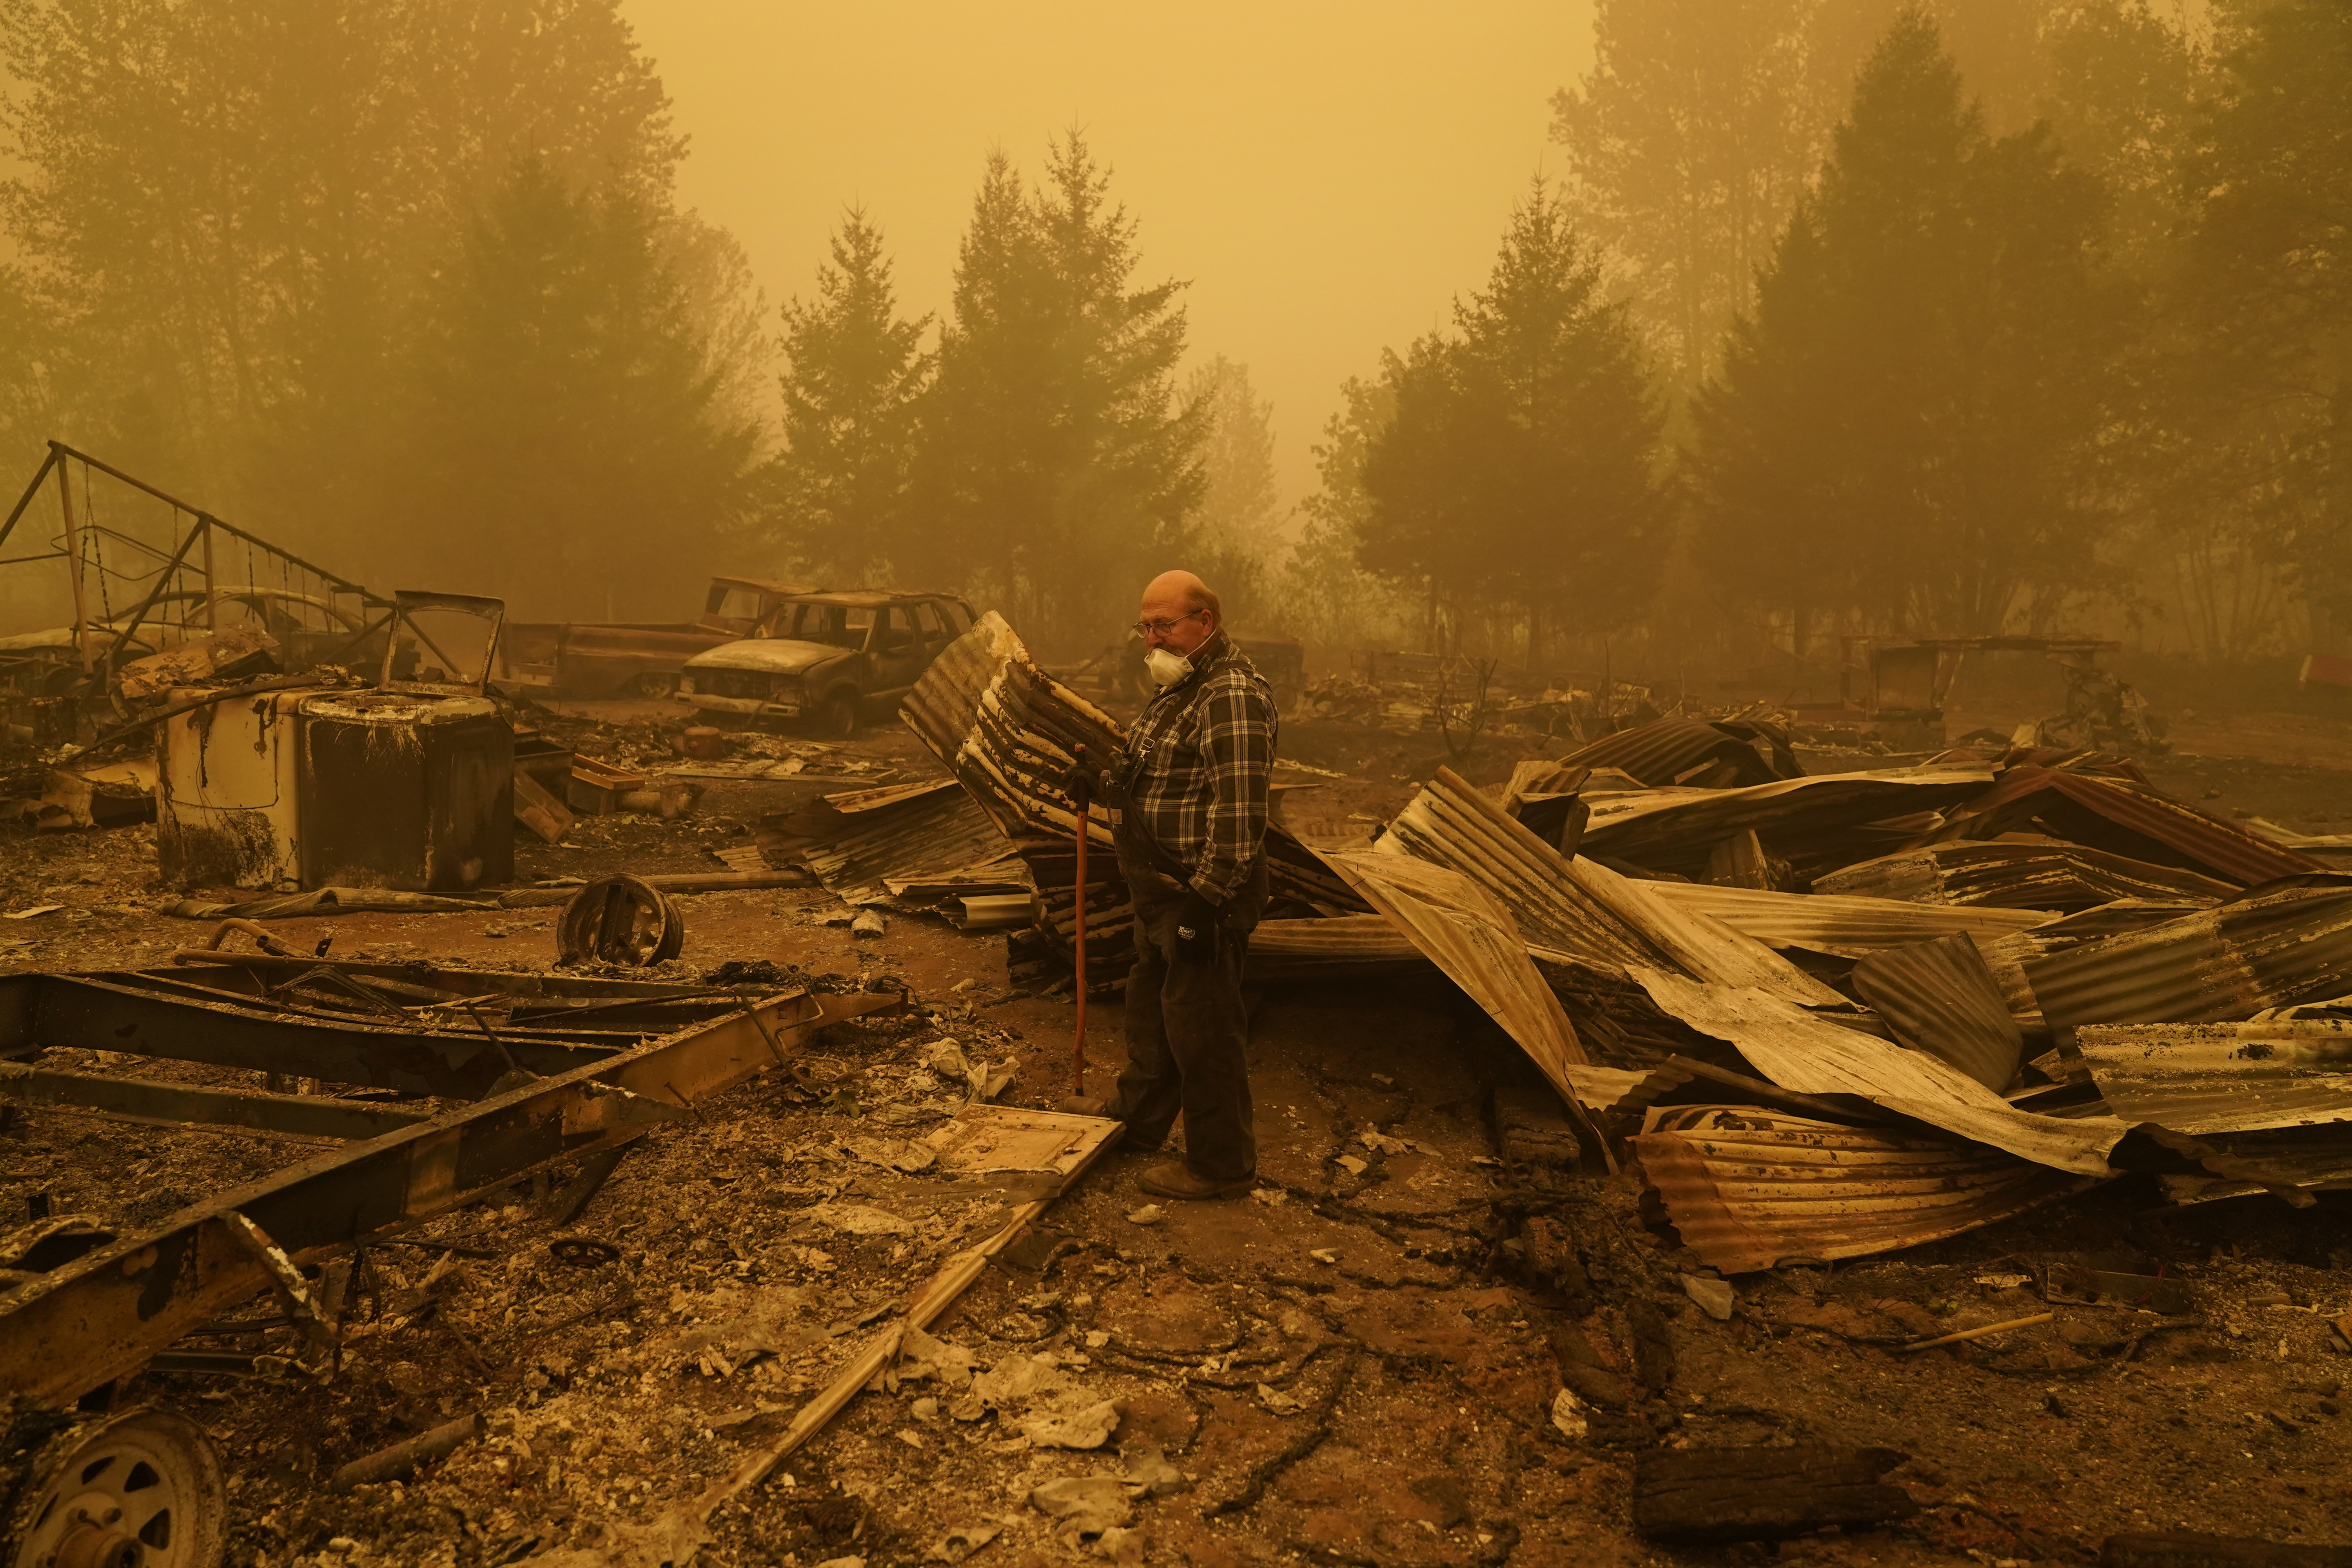 George Coble walks through what remains of a home on his property destroyed by a wildfire Sept. 12, 2020, in Mill City, Ore.